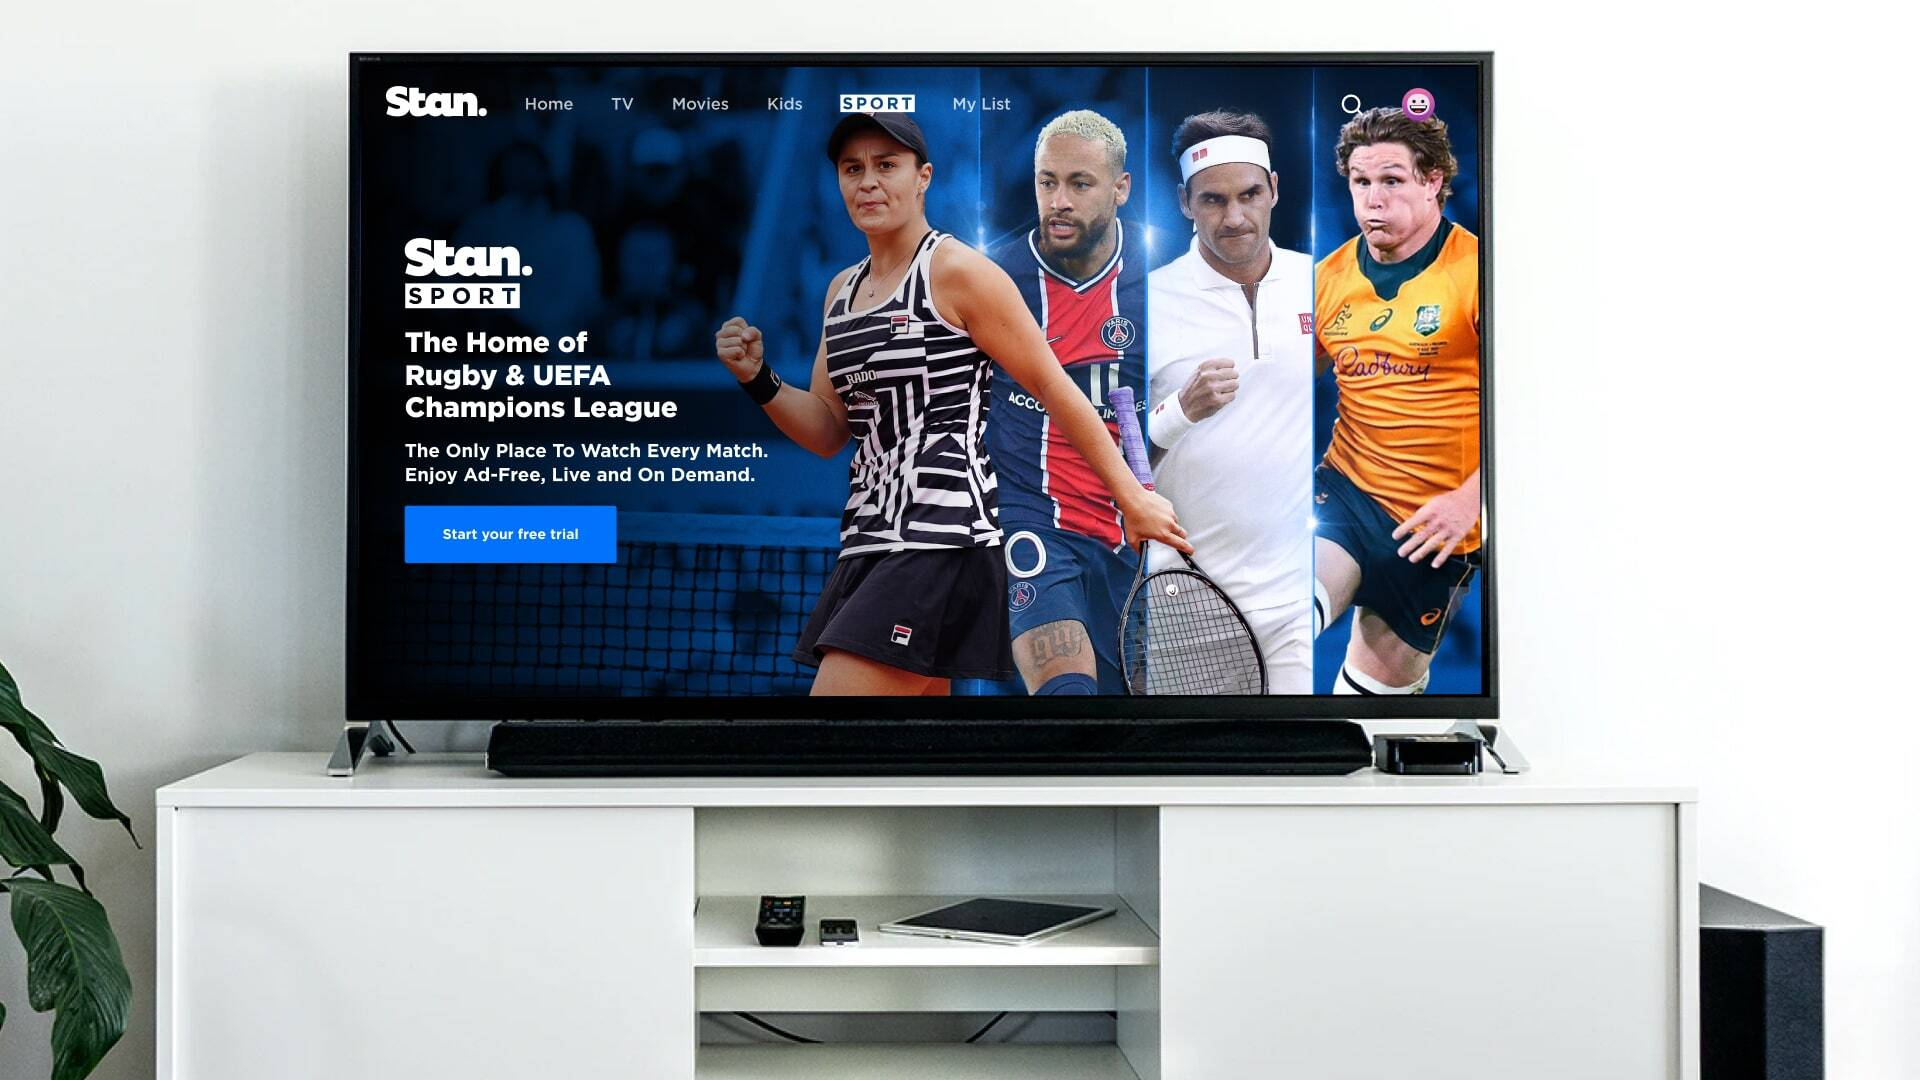 Stan Sport is the Home of Rugby & UEFA Champions League.